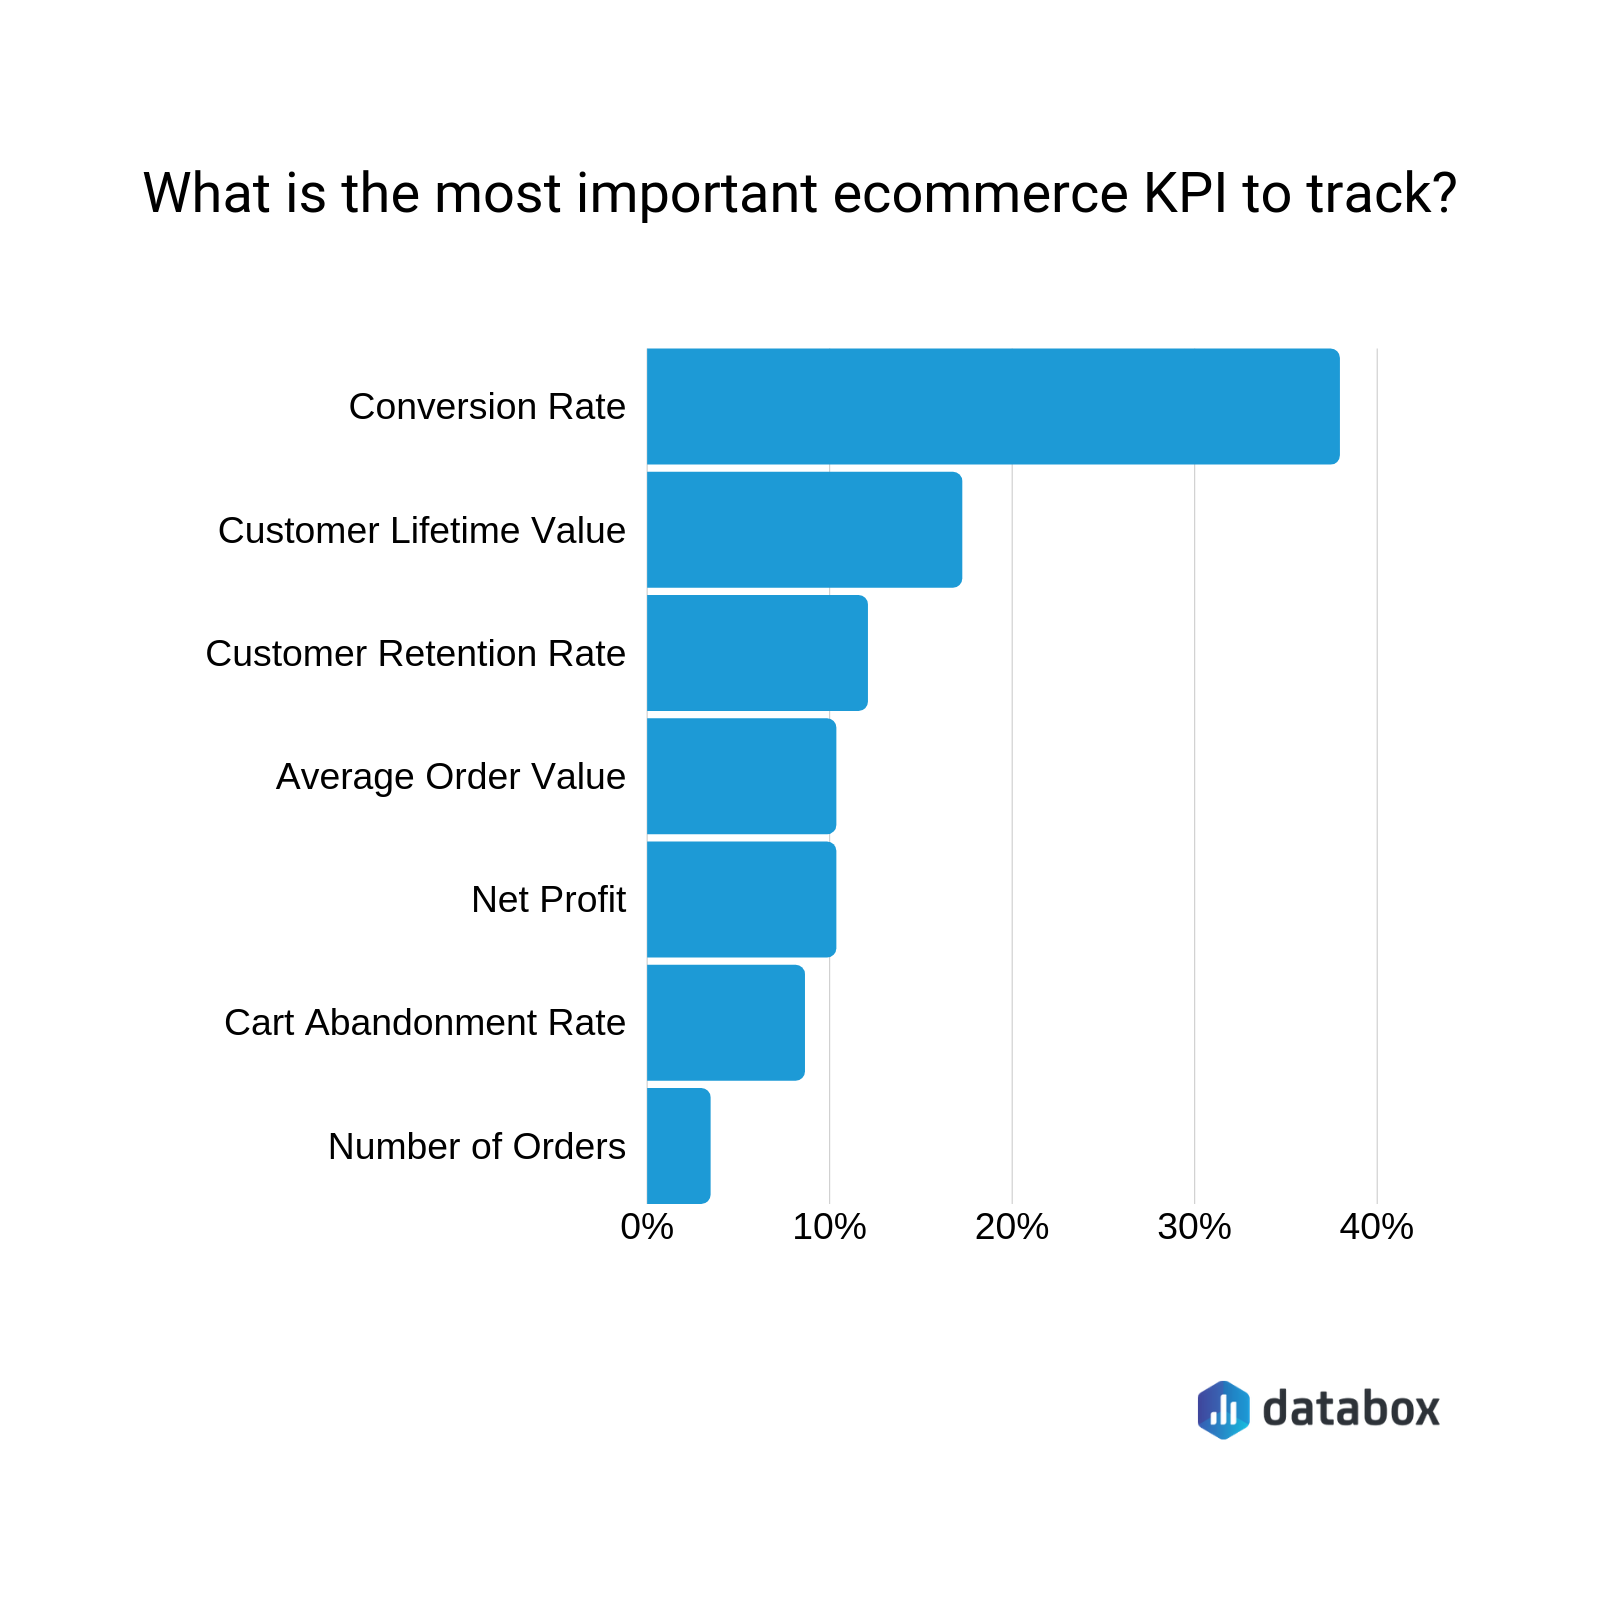 the most important ecommerce kpis